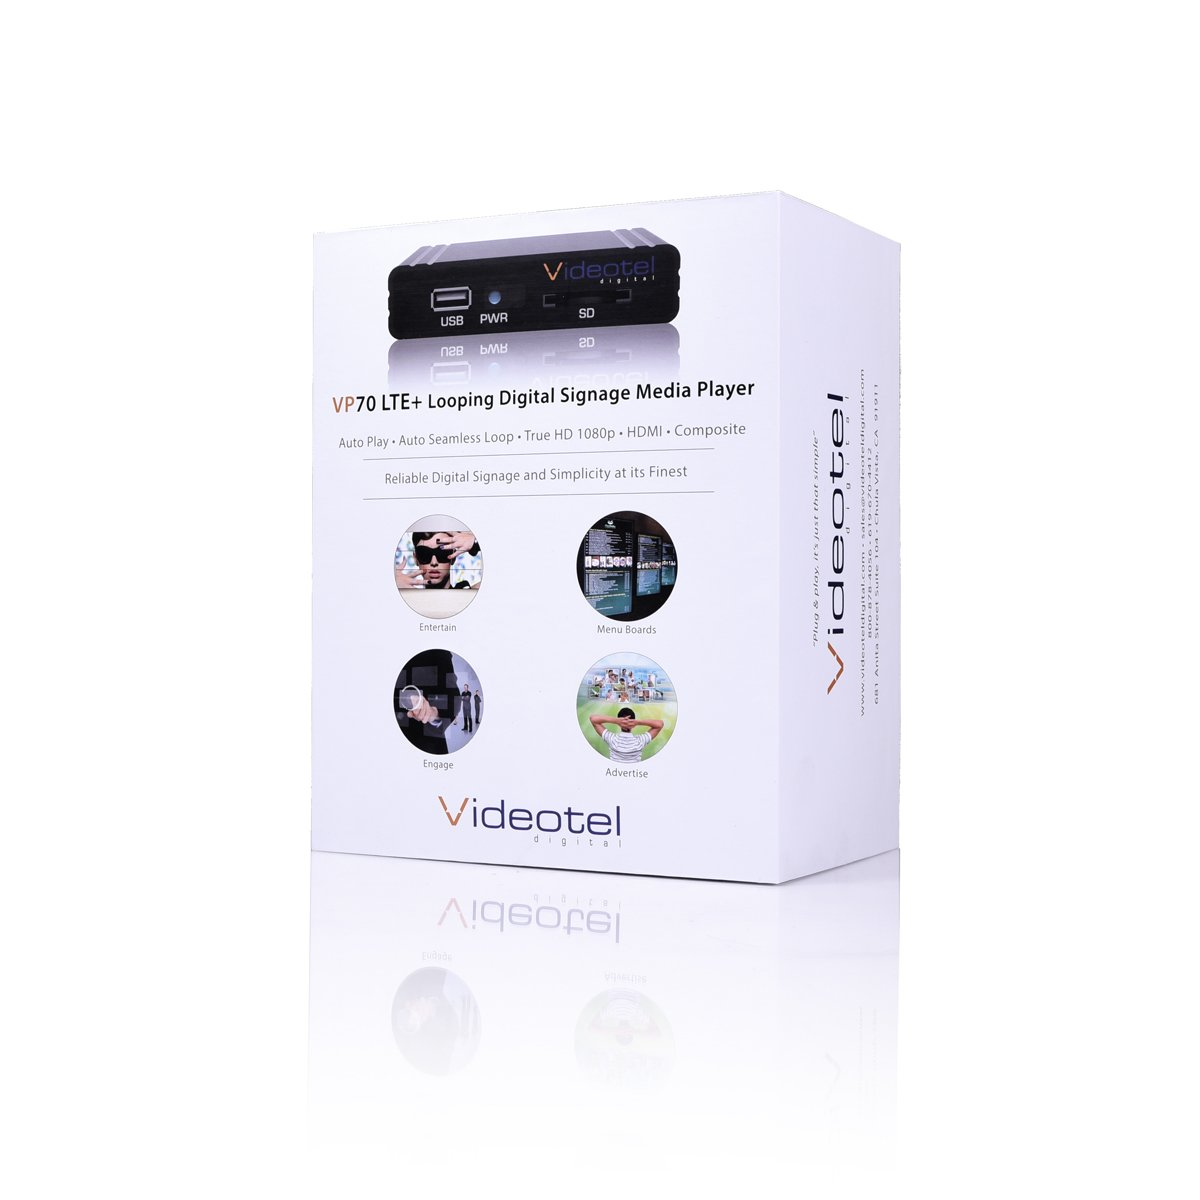 VP70 LTE (Plus) Premium Industrial Grade Digital Signage Media Player, Auto  Starts, Auto Plays & Auto Seamlessly Loops Video and Image Files, 24/7 for